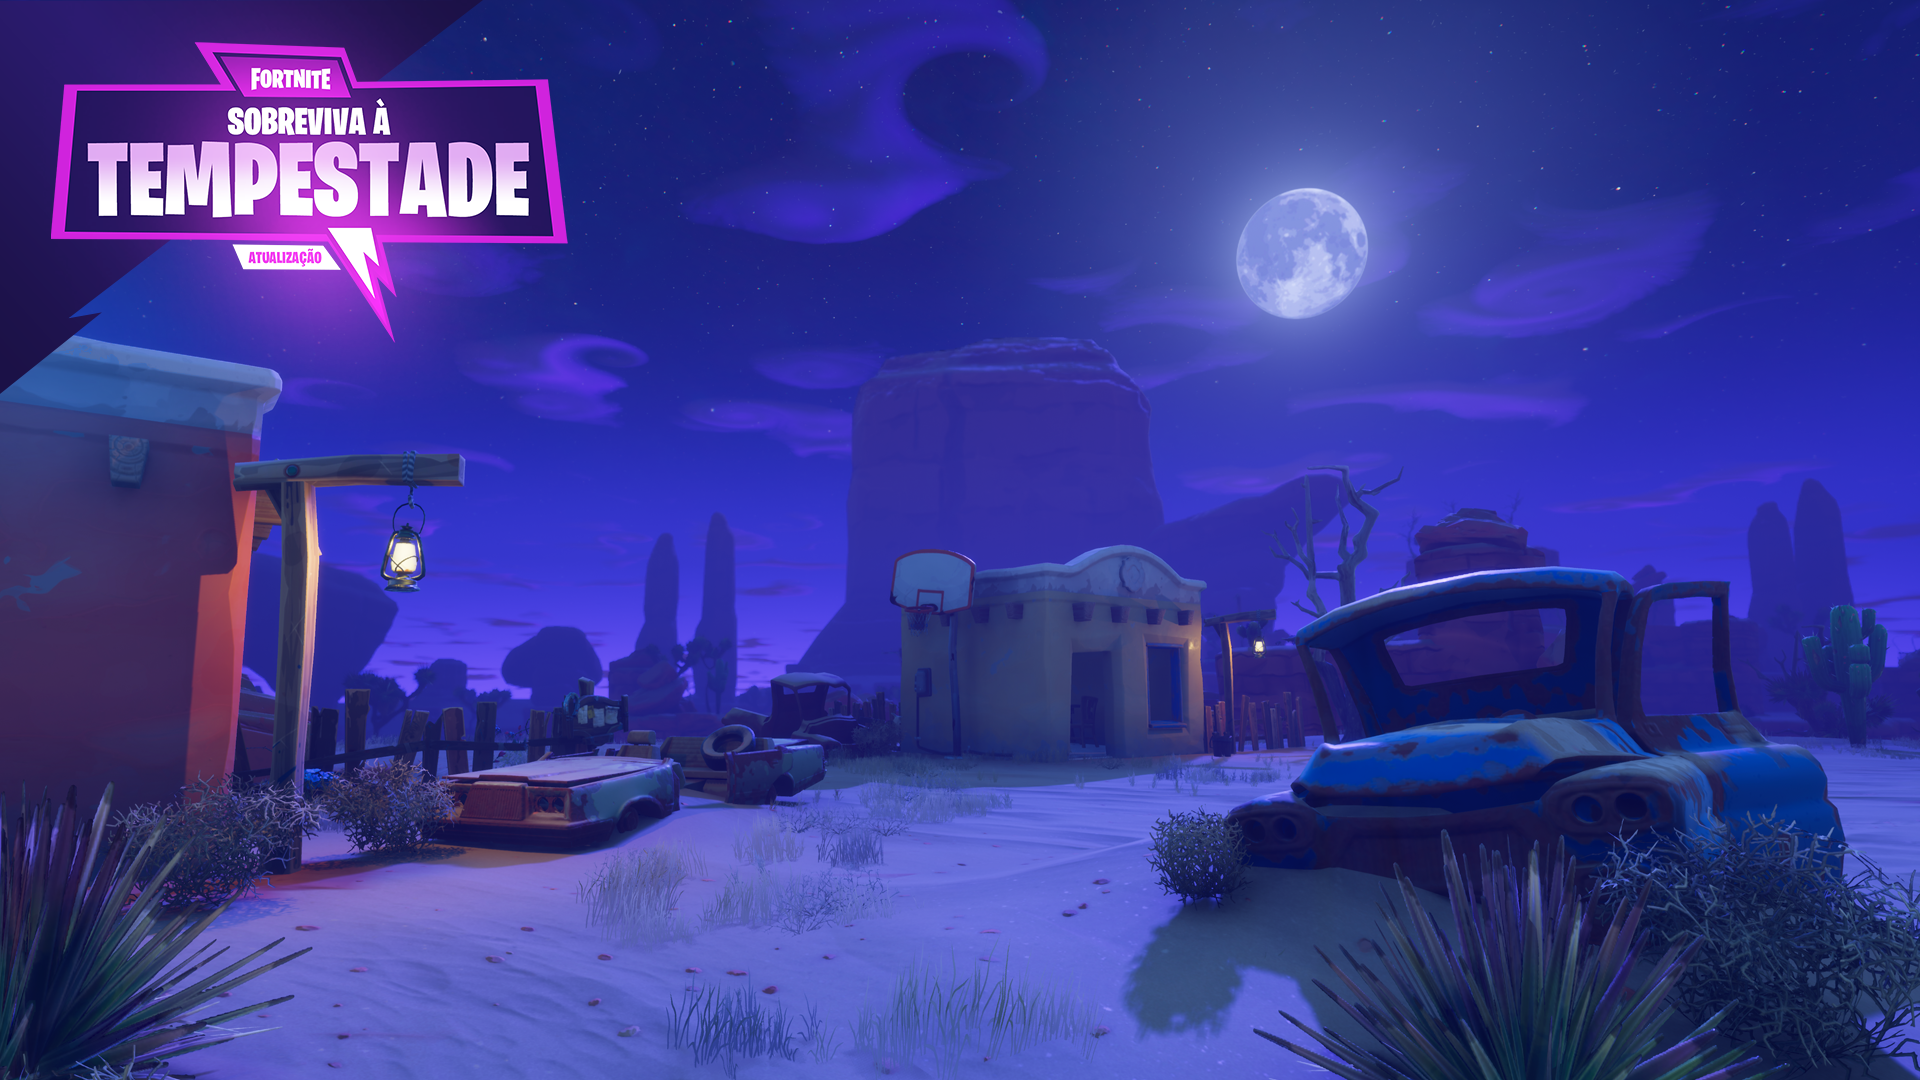 Fortnite%2Fblog%2Fsurvive-the-storm---release-notes%2FPT_2-Canny-Valley-1920x1080-20a2aa71b968bfdf11622e22dcee4ddf373bbbd7